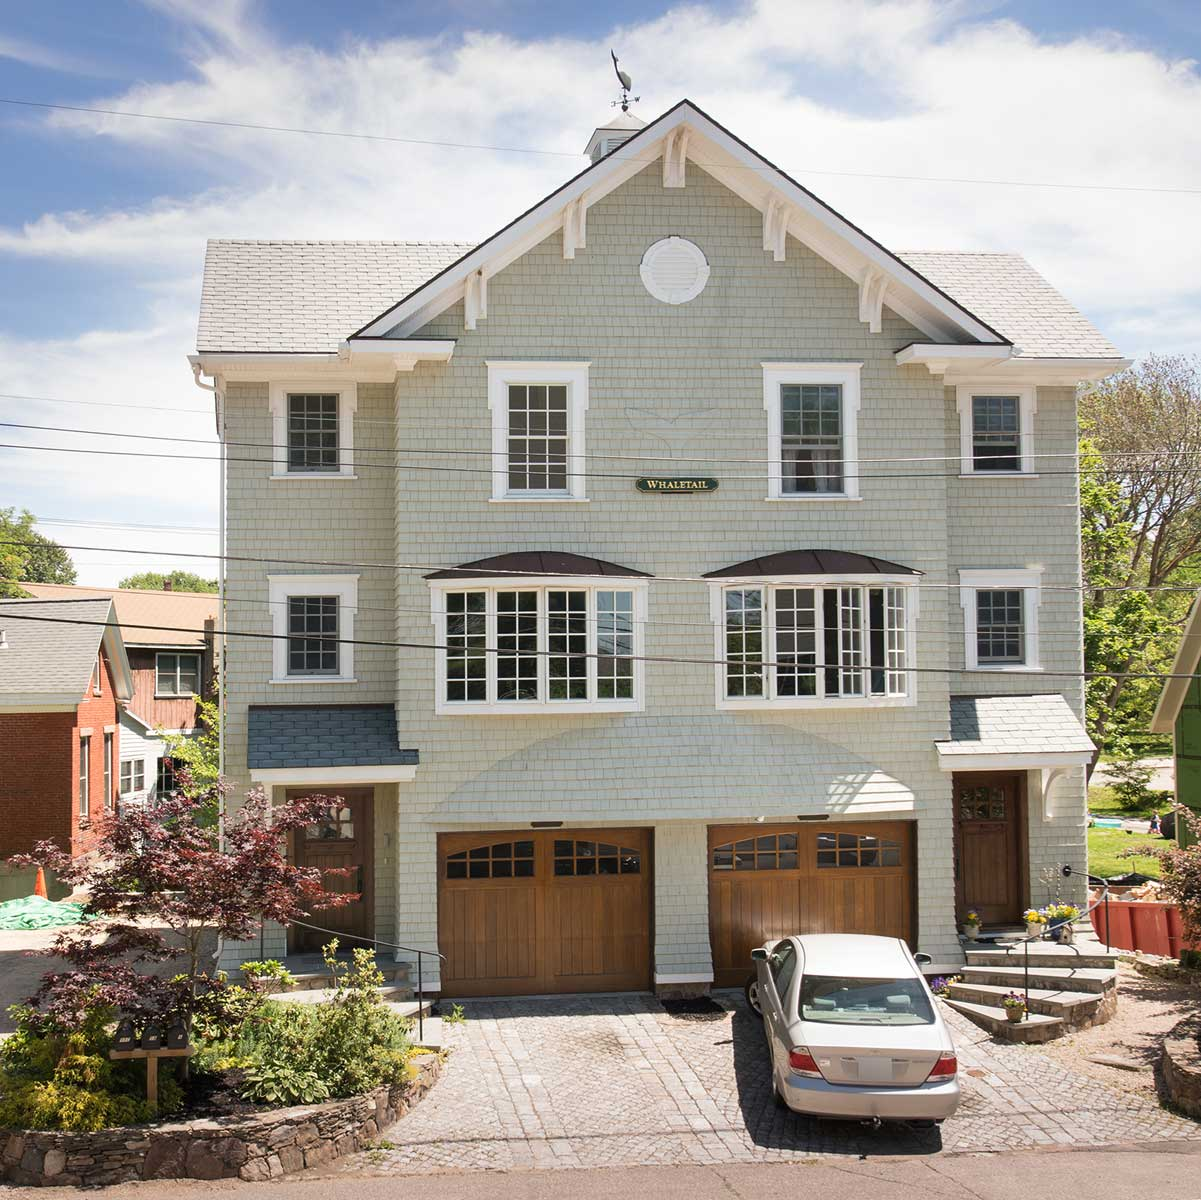 Townhouse for Sale at Kittery Foreside Townhouse 1 Stimson Street Kittery, Maine 03904 United States